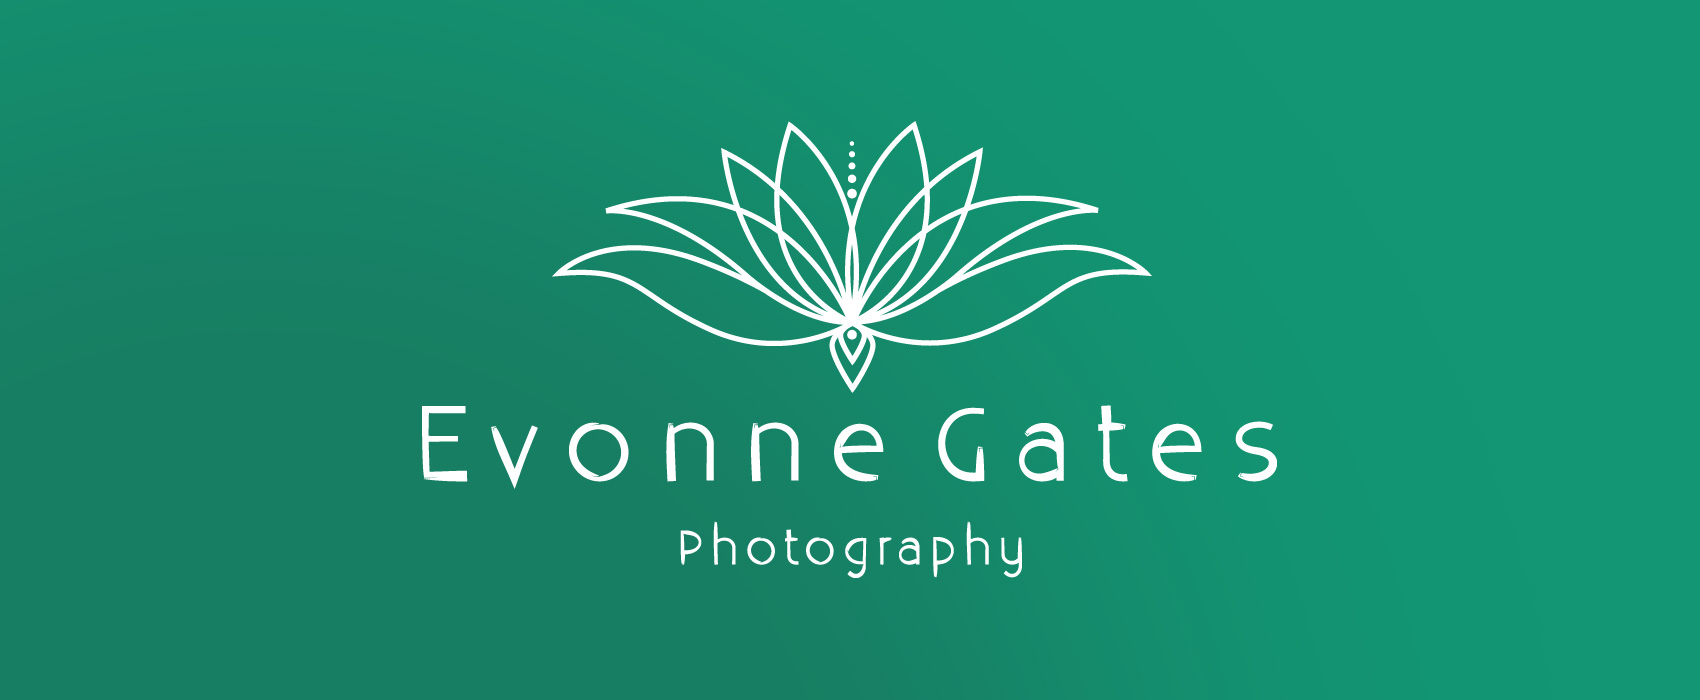 Evonne gates Photography Logo Design